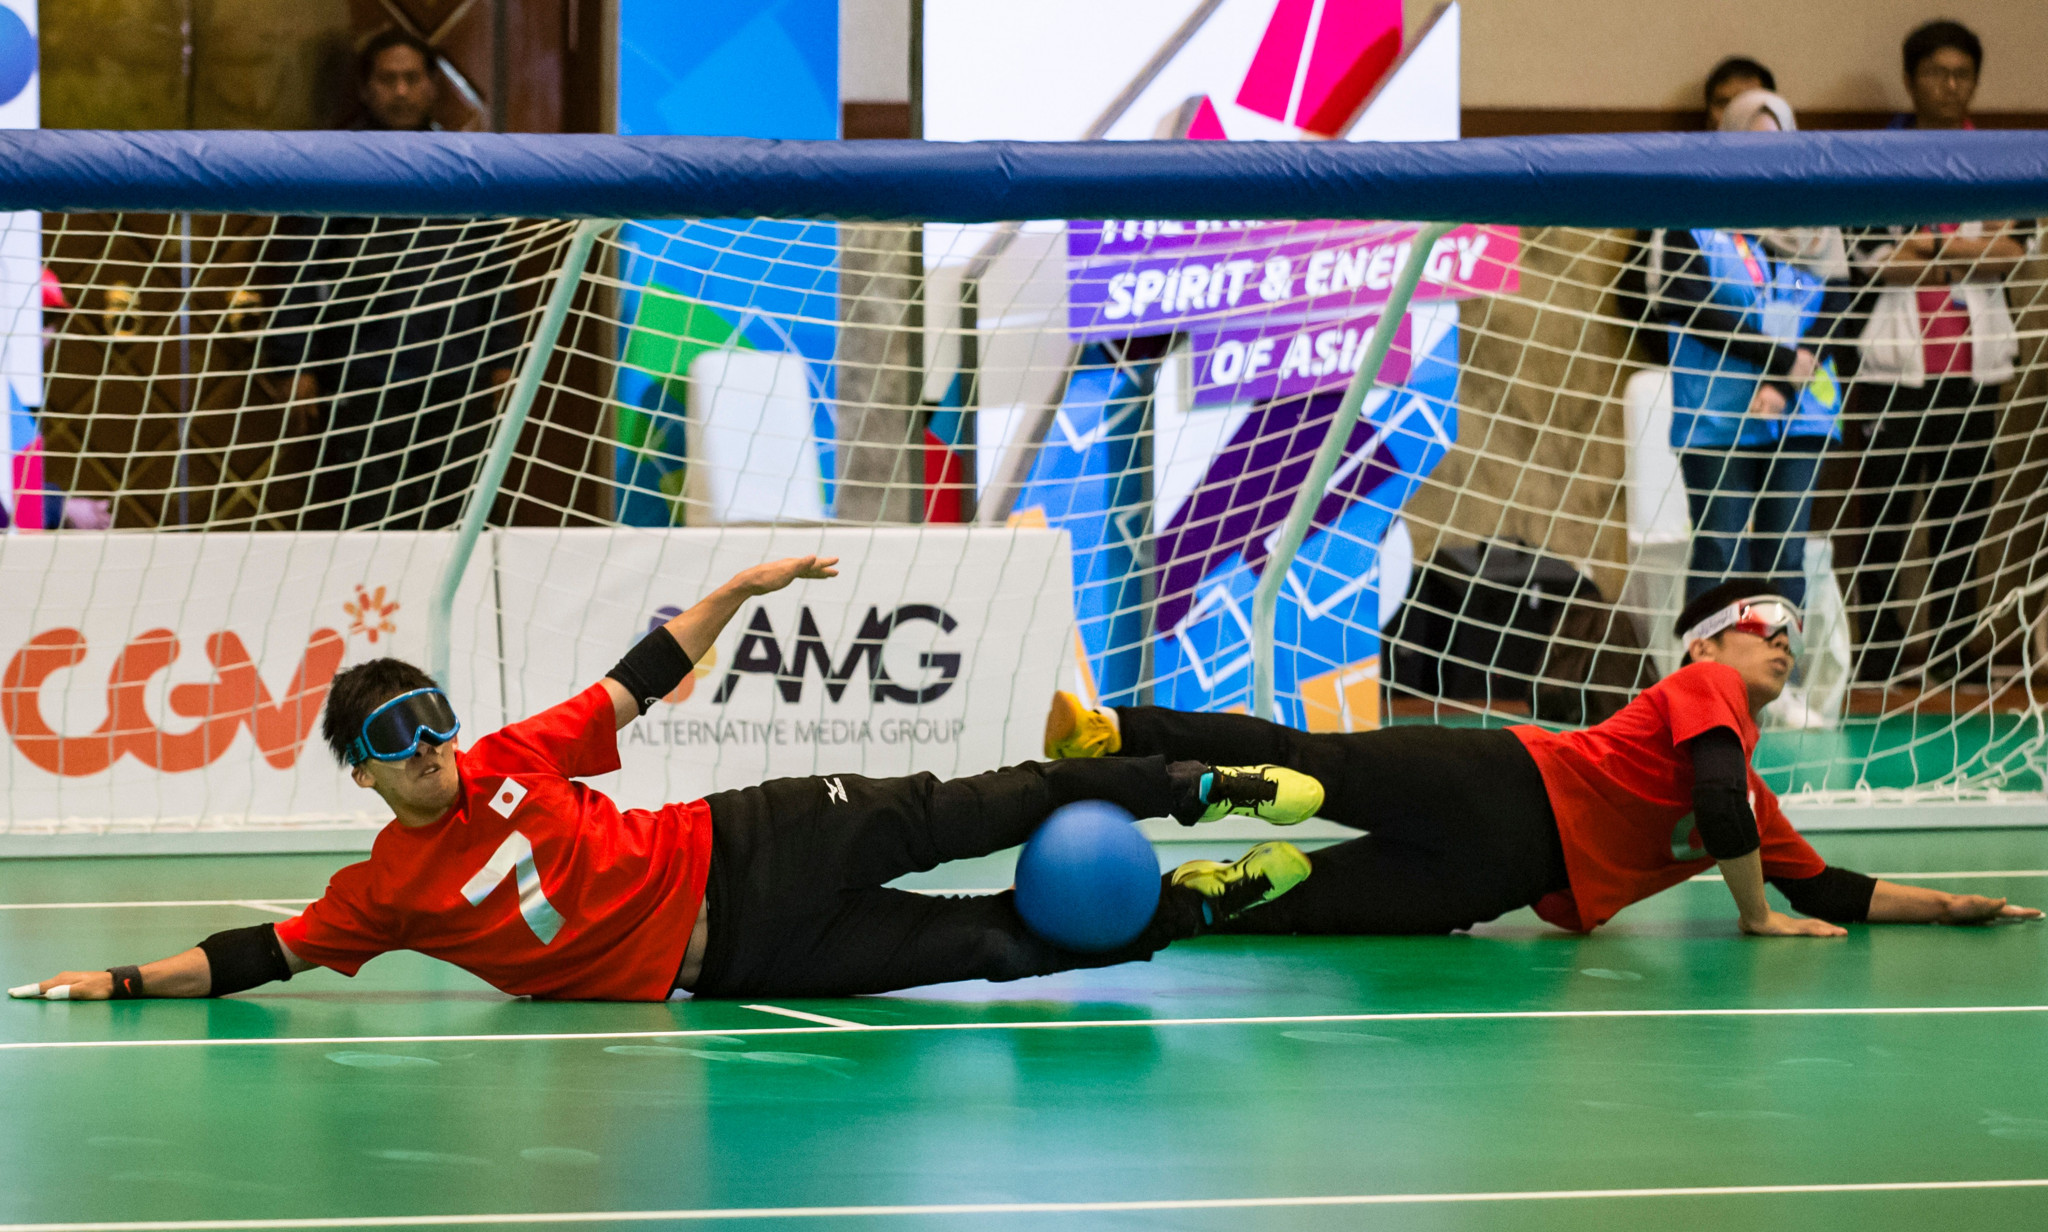 Goalball has been included in the programme ©Getty Images